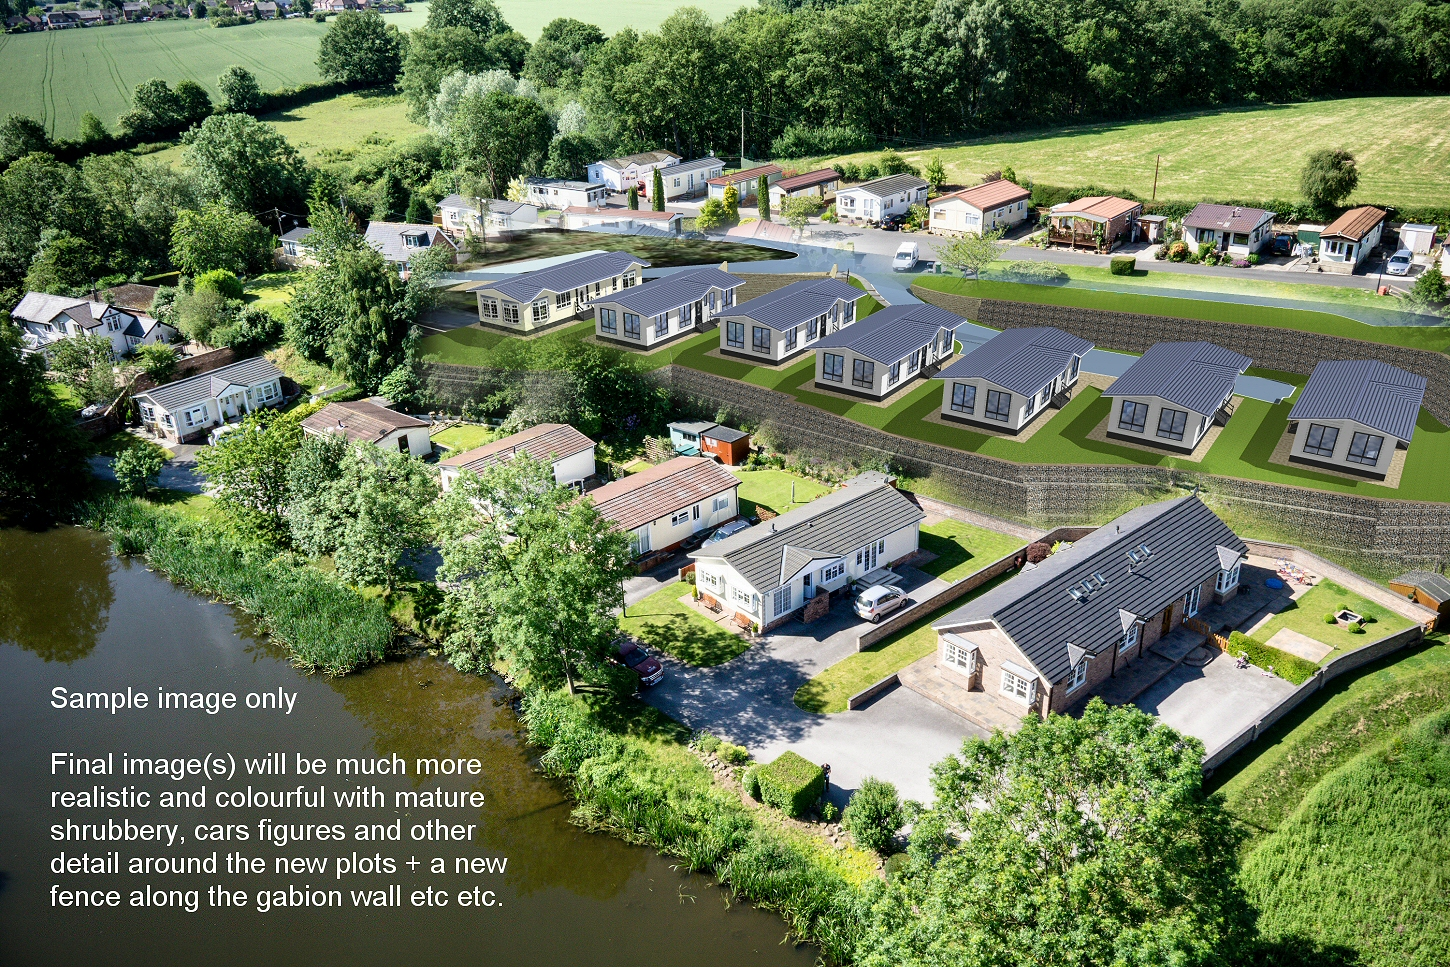 Brand new development of 7 new homes coming soon.